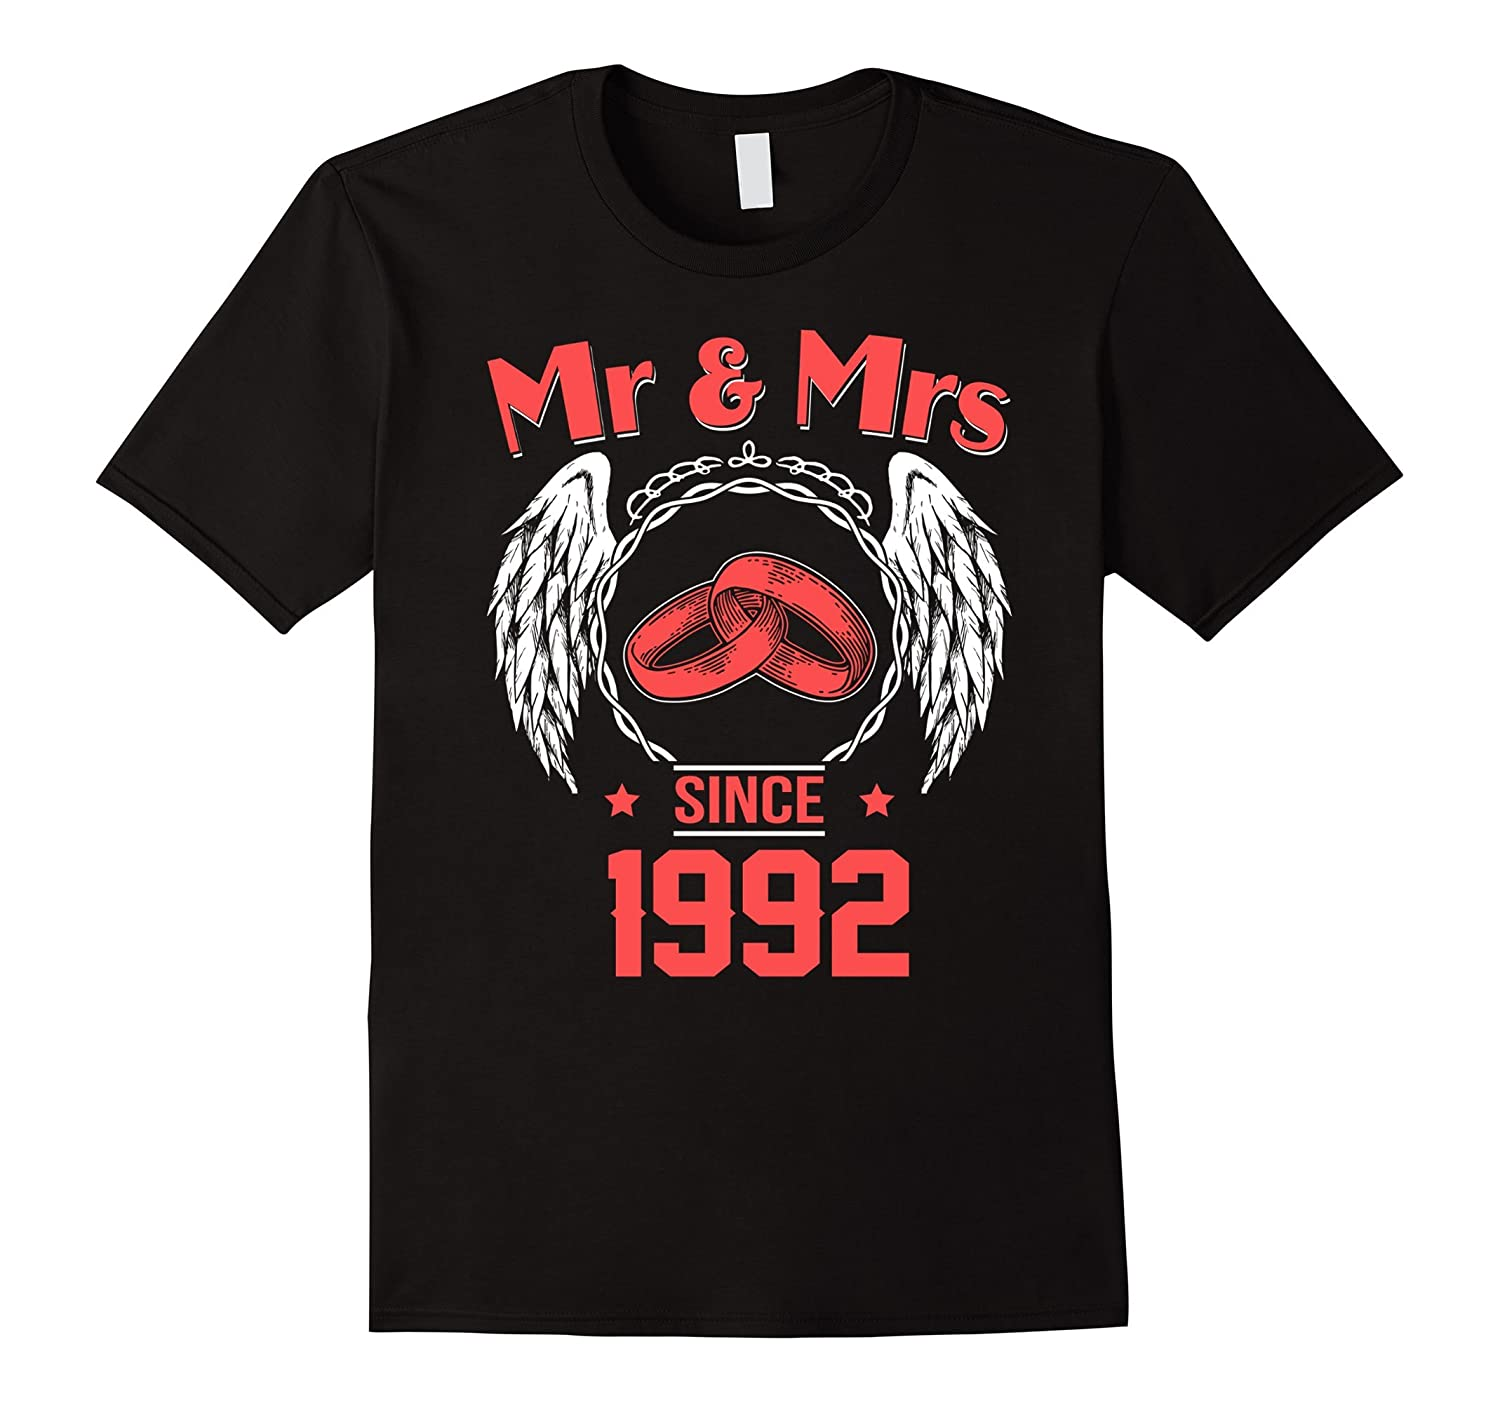 25th Wedding Anniversary Gifts For Wife: 25th Wedding Anniversary Gifts T Shirts For Husband For